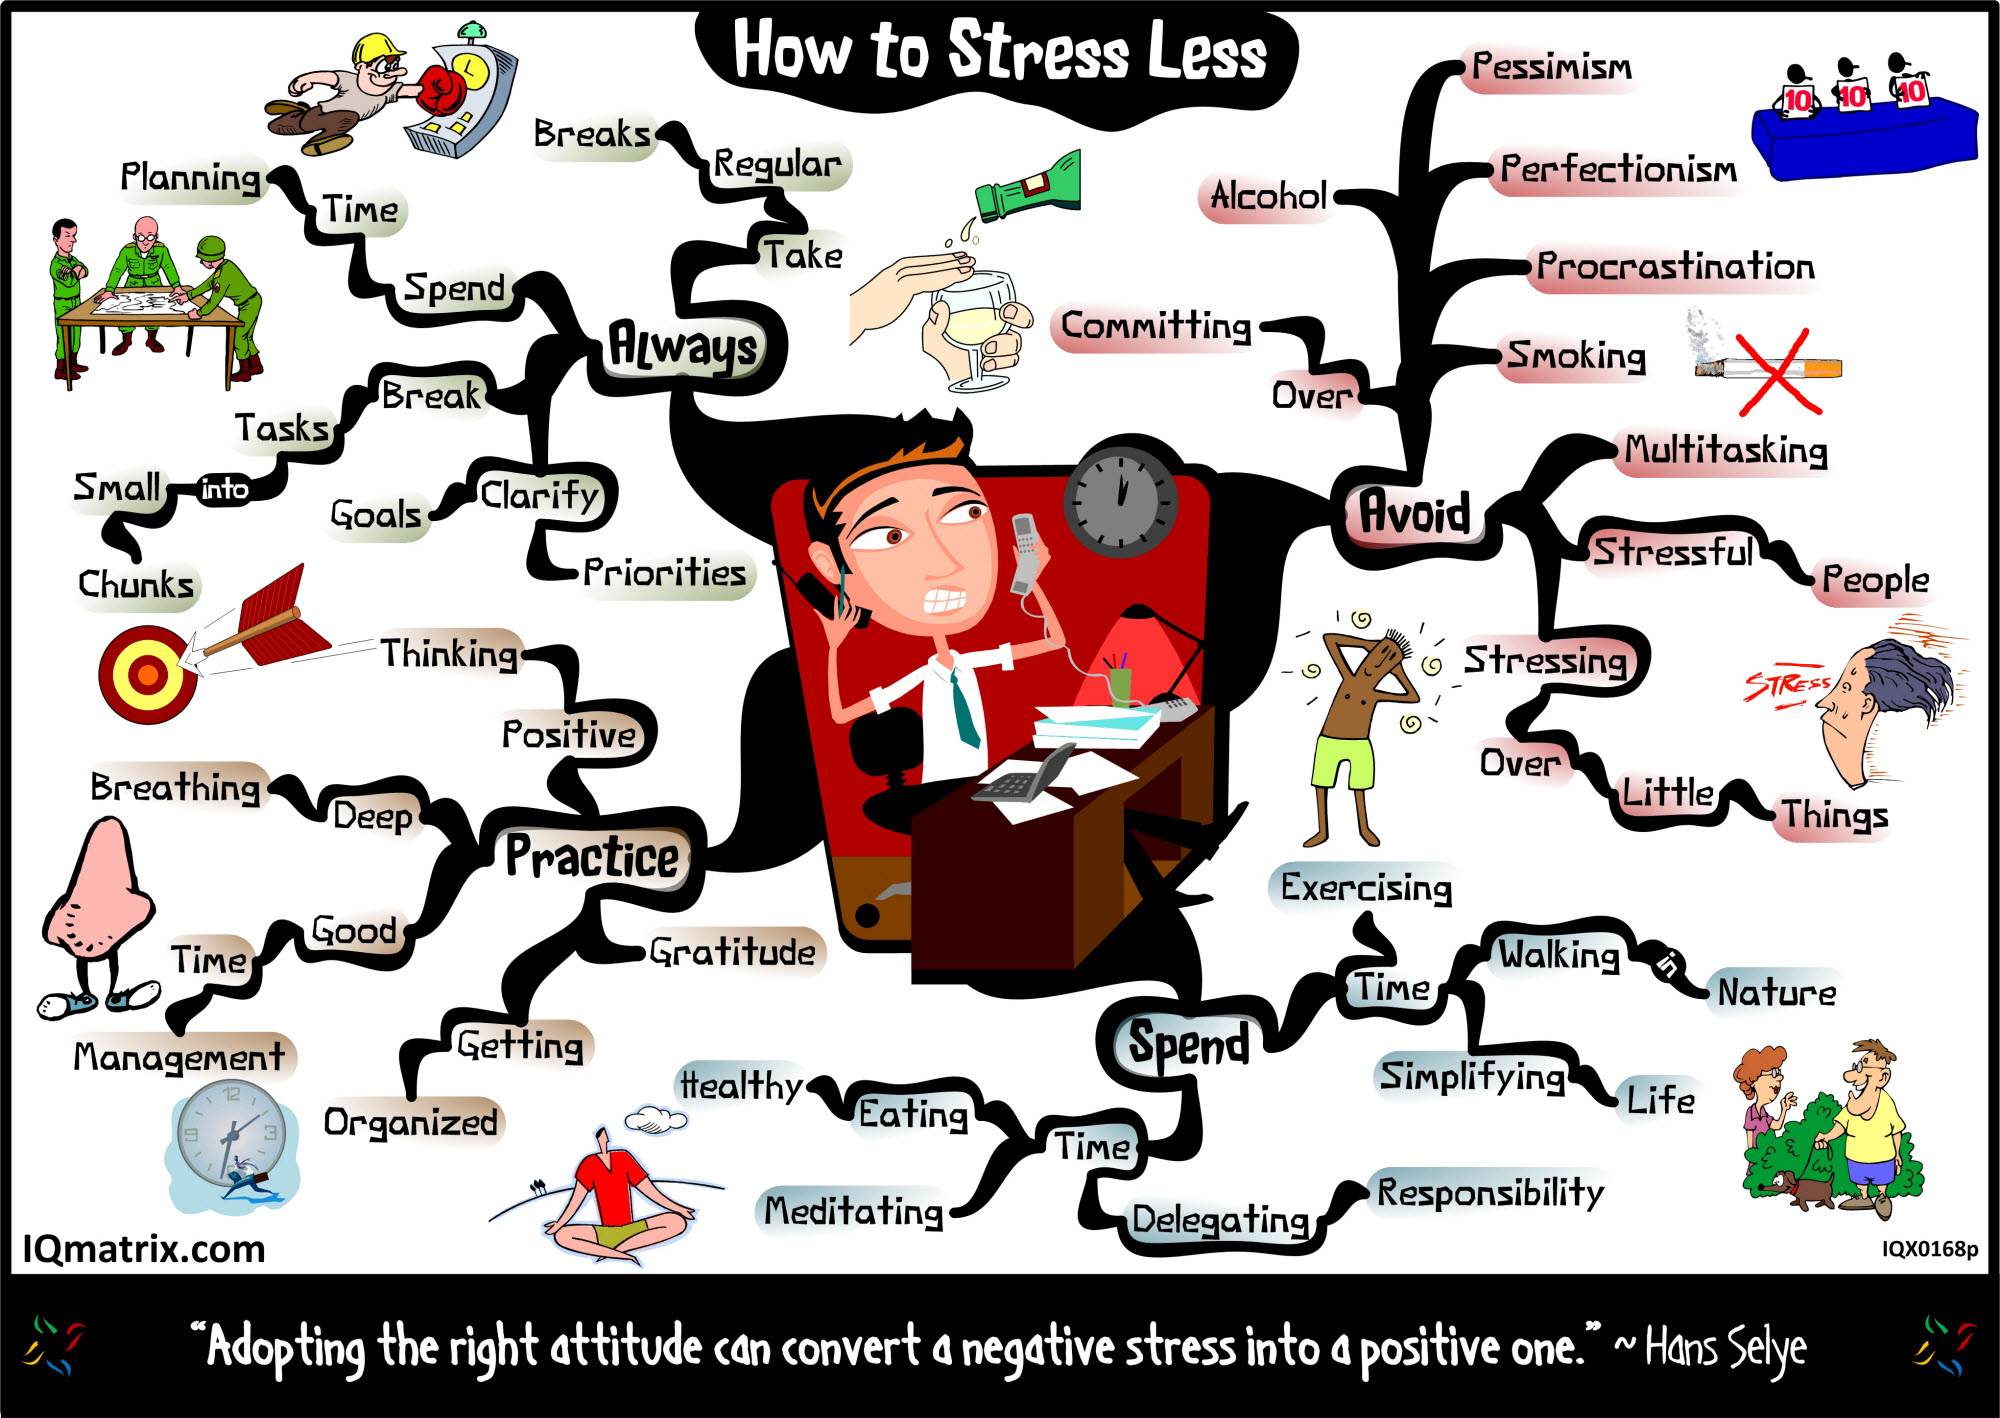 https://i0.wp.com/blog.iqmatrix.com/wp-content/uploads/2012/03/stress-less-mind-map-2000px.jpg